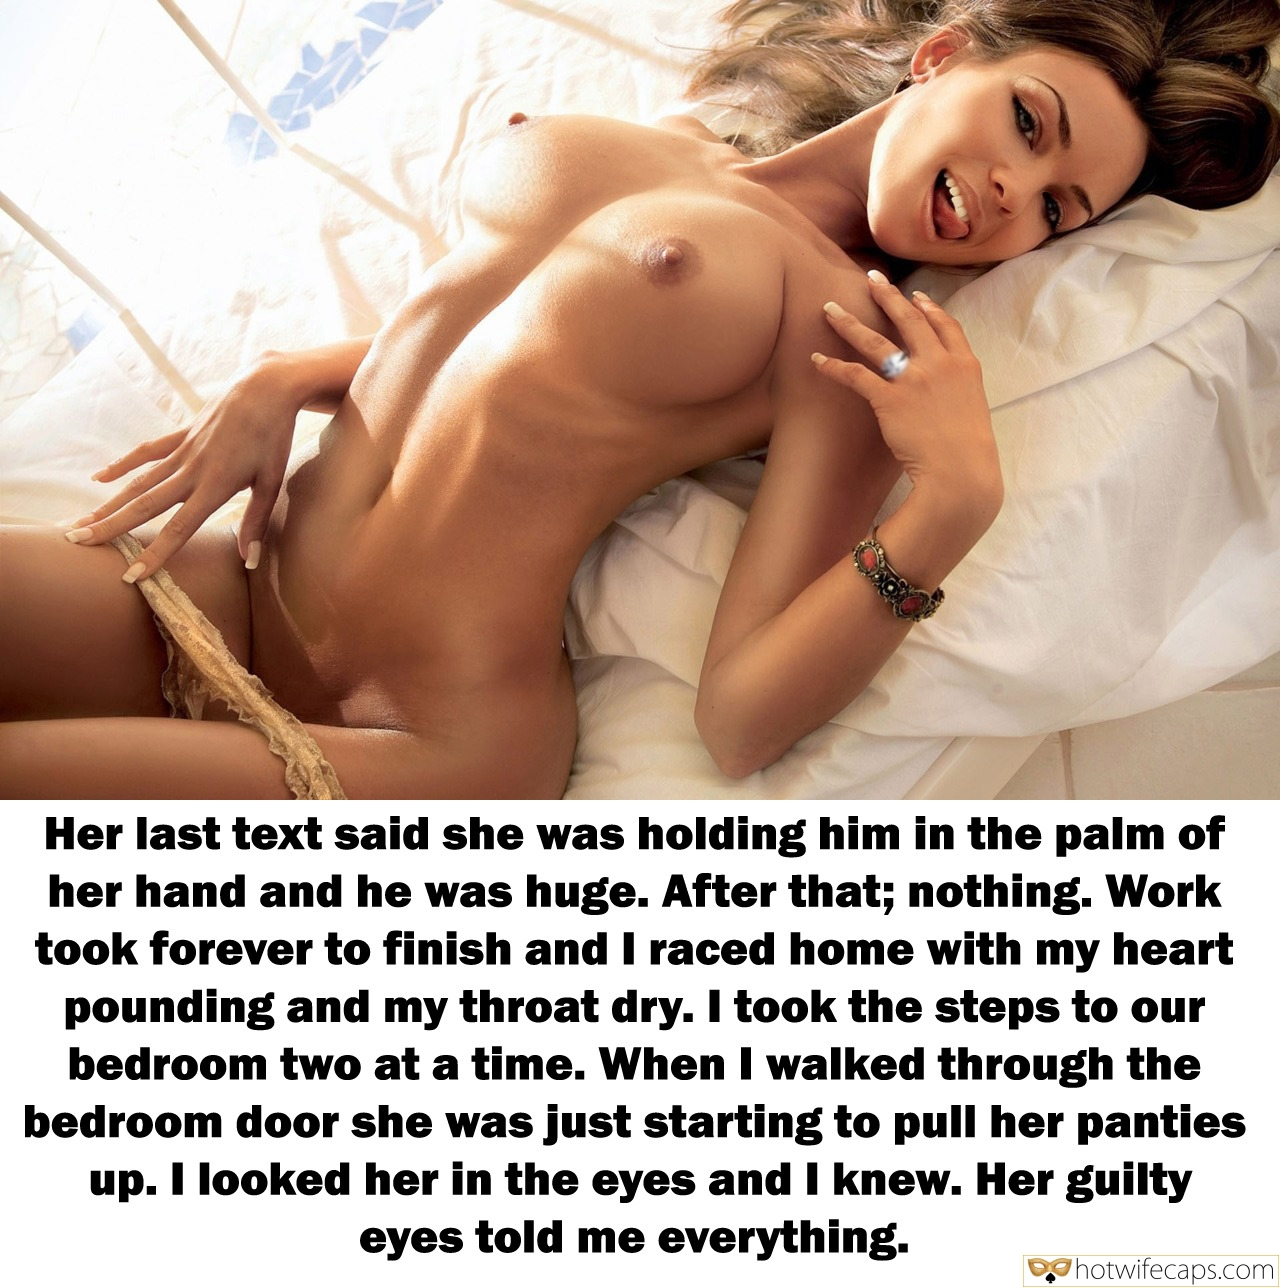 Cheating Bigger Cock  hotwife caption: Her last text said she was holding him in the palm of her hand and he was huge. After that; nothing. Work took forever to finish and I raced home with my heart pounding and my throat dry. I took...